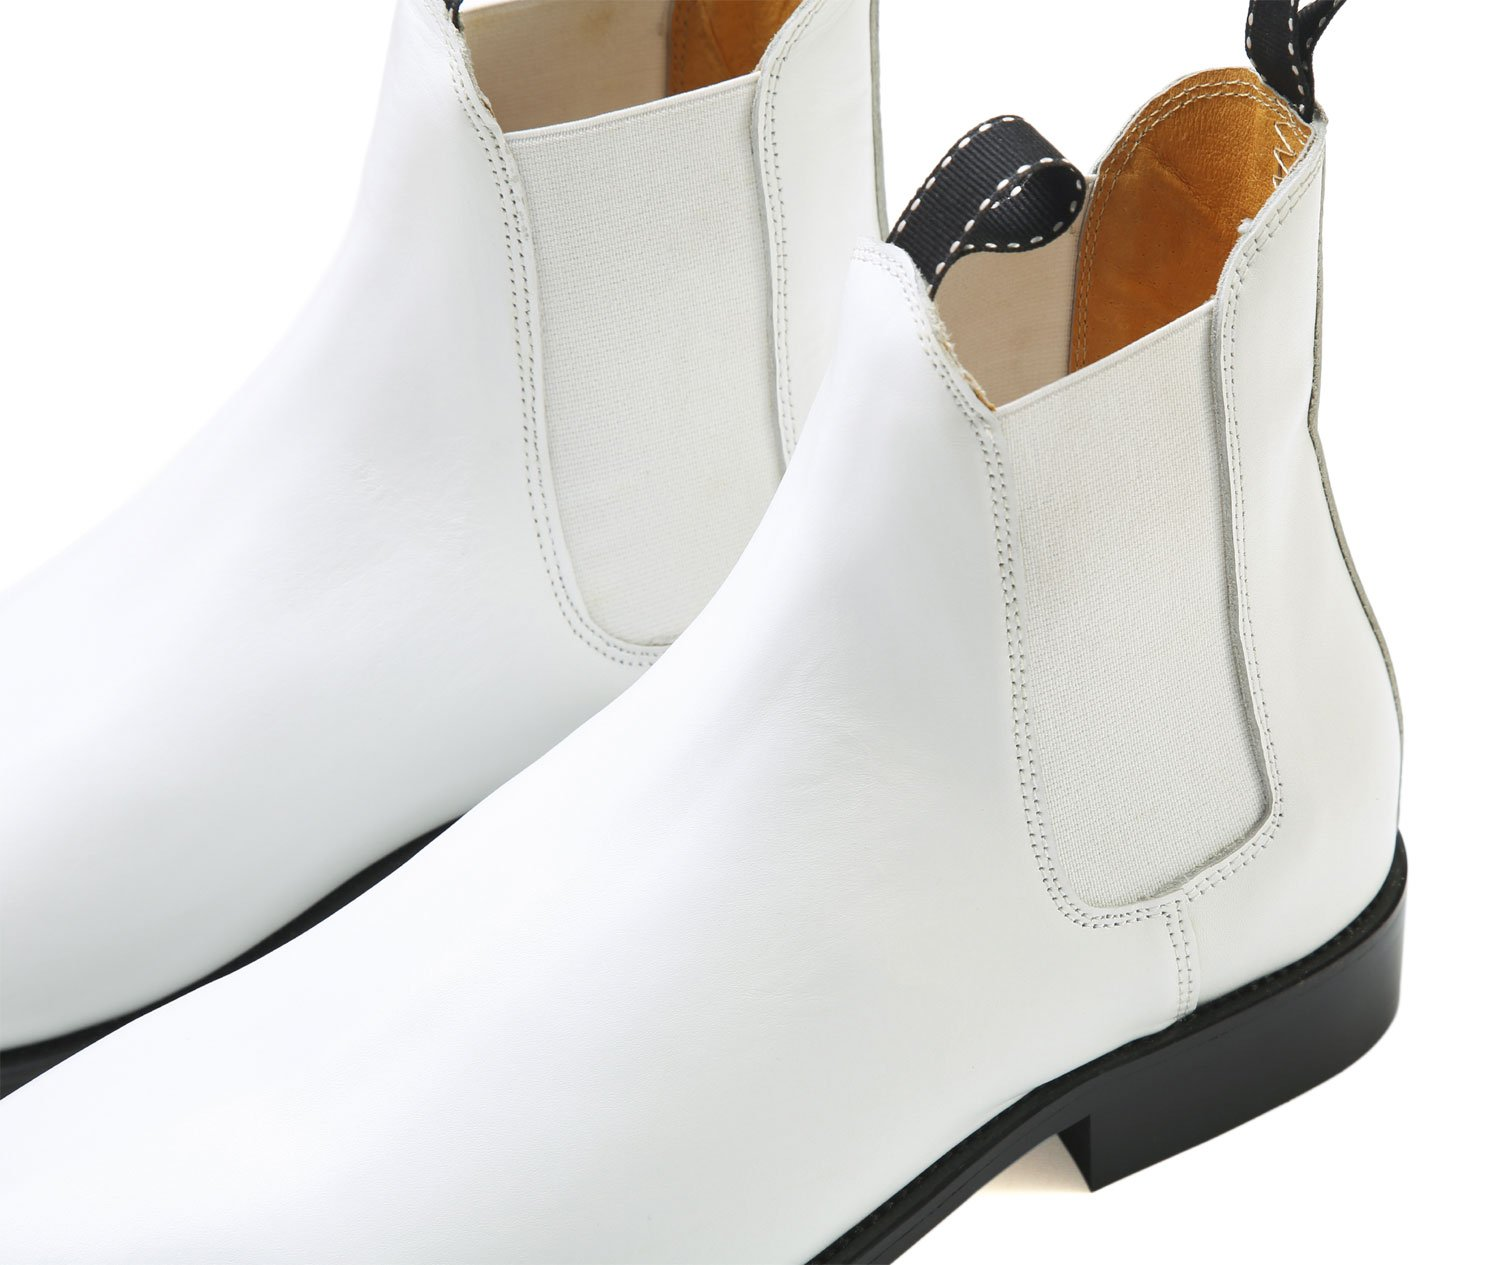 for a Stormtrooper Costume from UK White Real Leather Ankle Boots